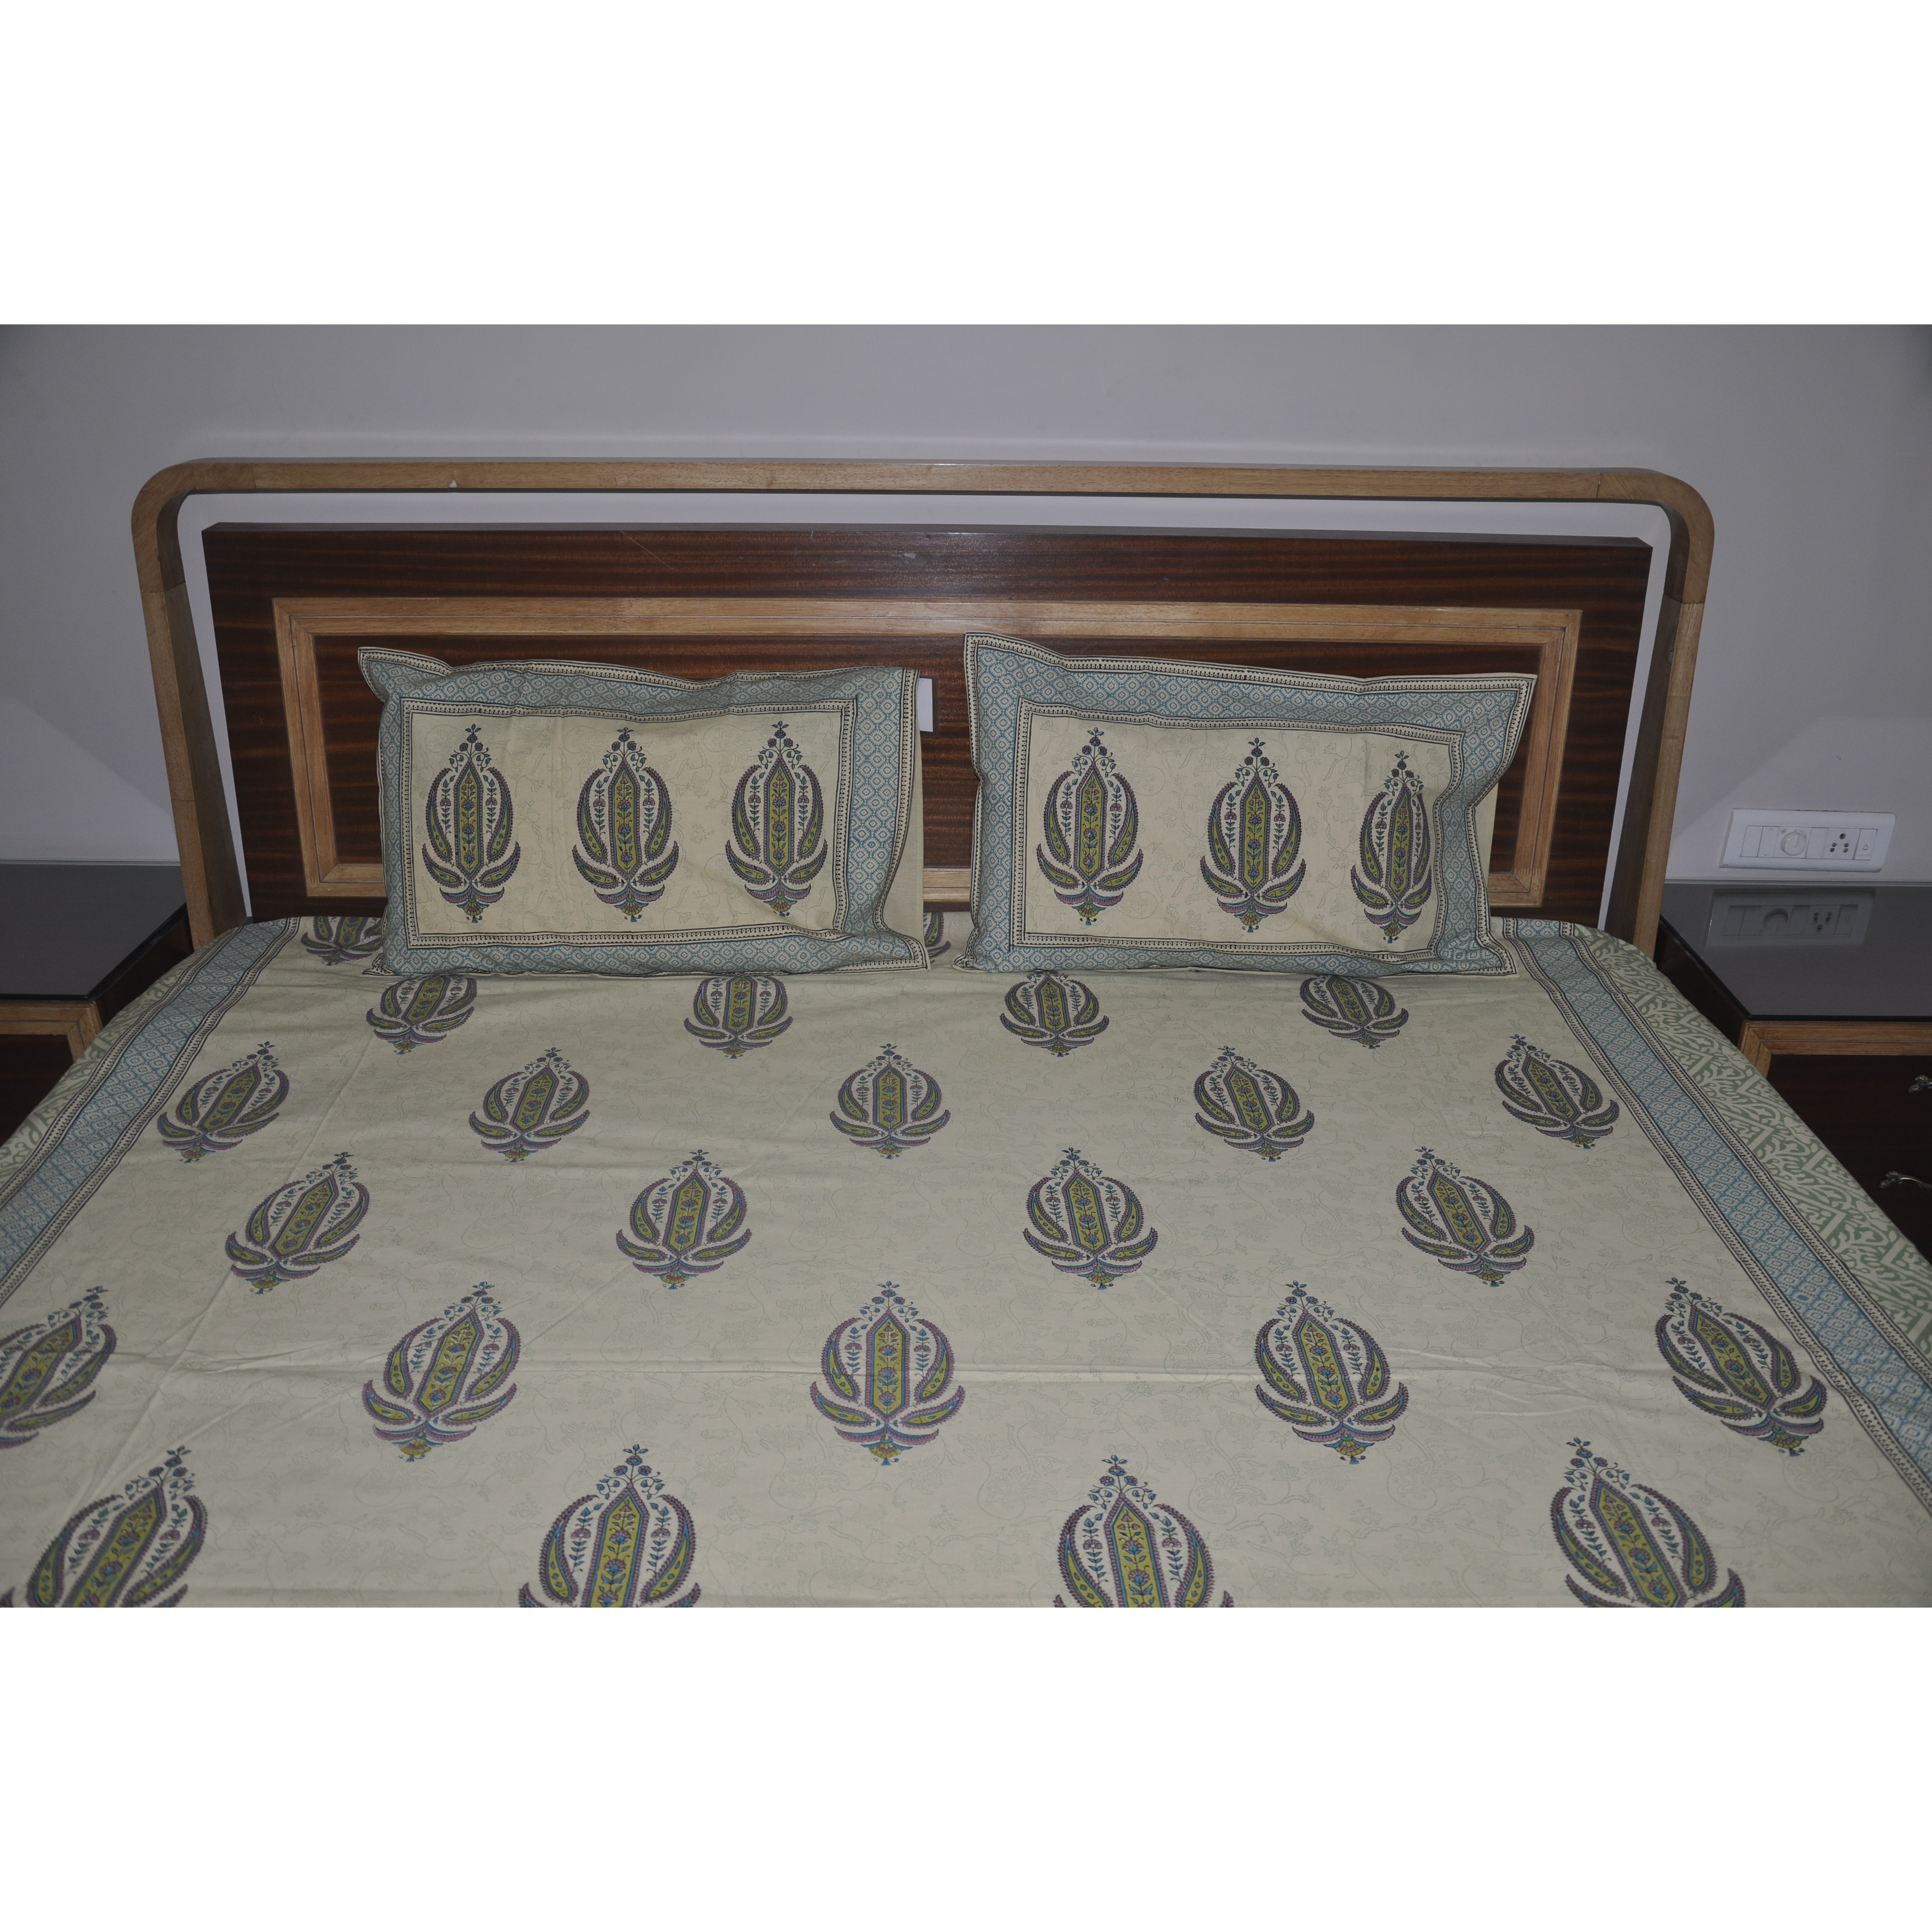 Ethnic Bedspread Beige Cotton Blue Printed Bedsheets Bed Cover Pillowcases Set